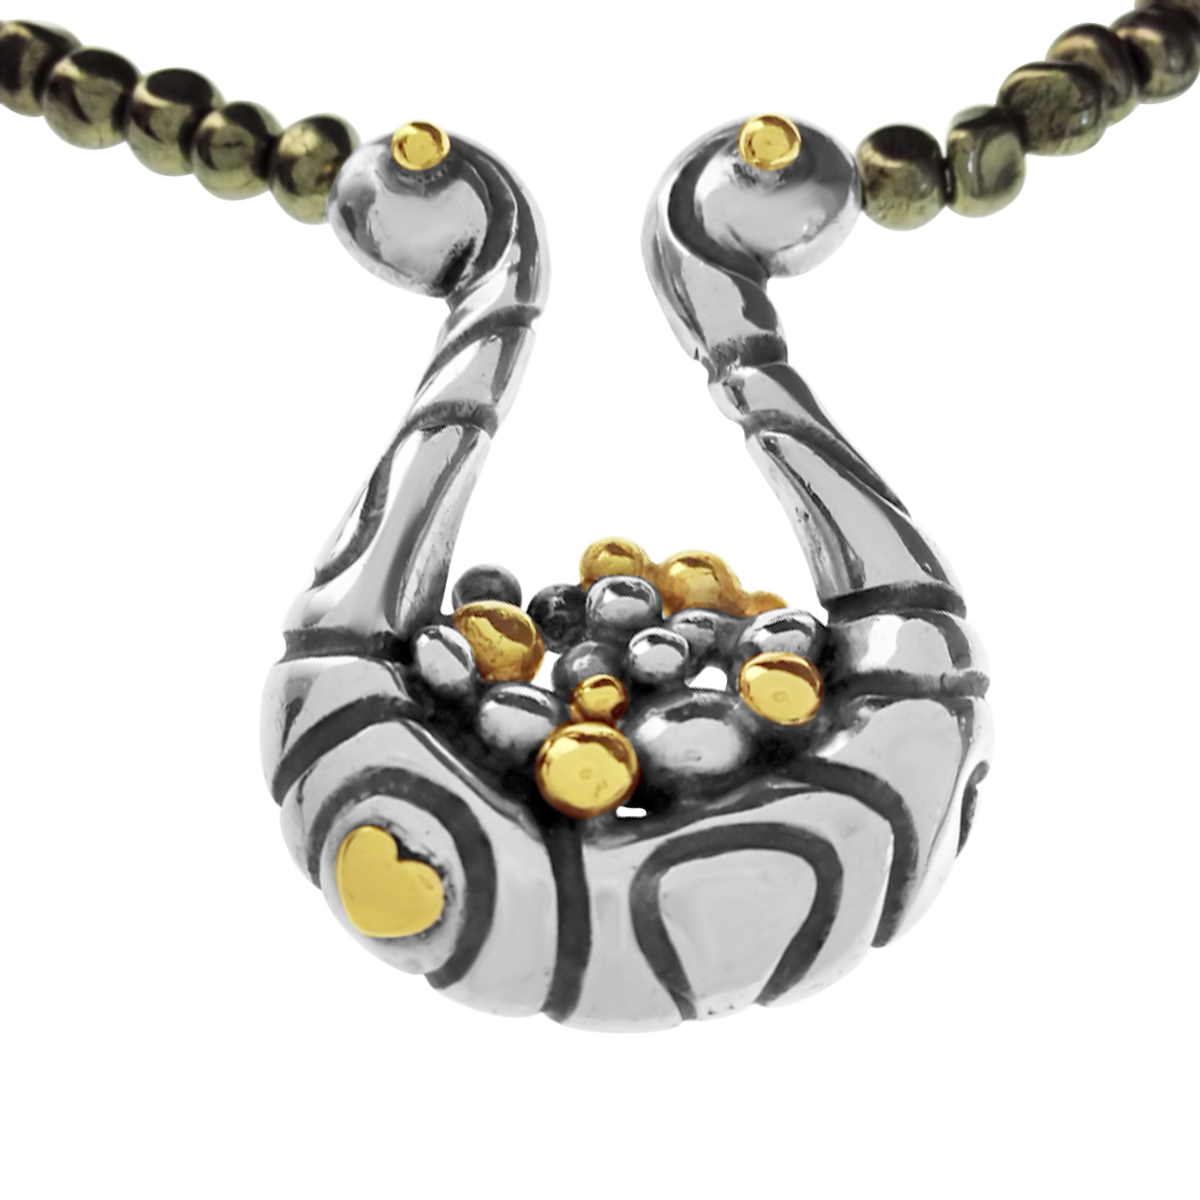 Molecule cradle necklace